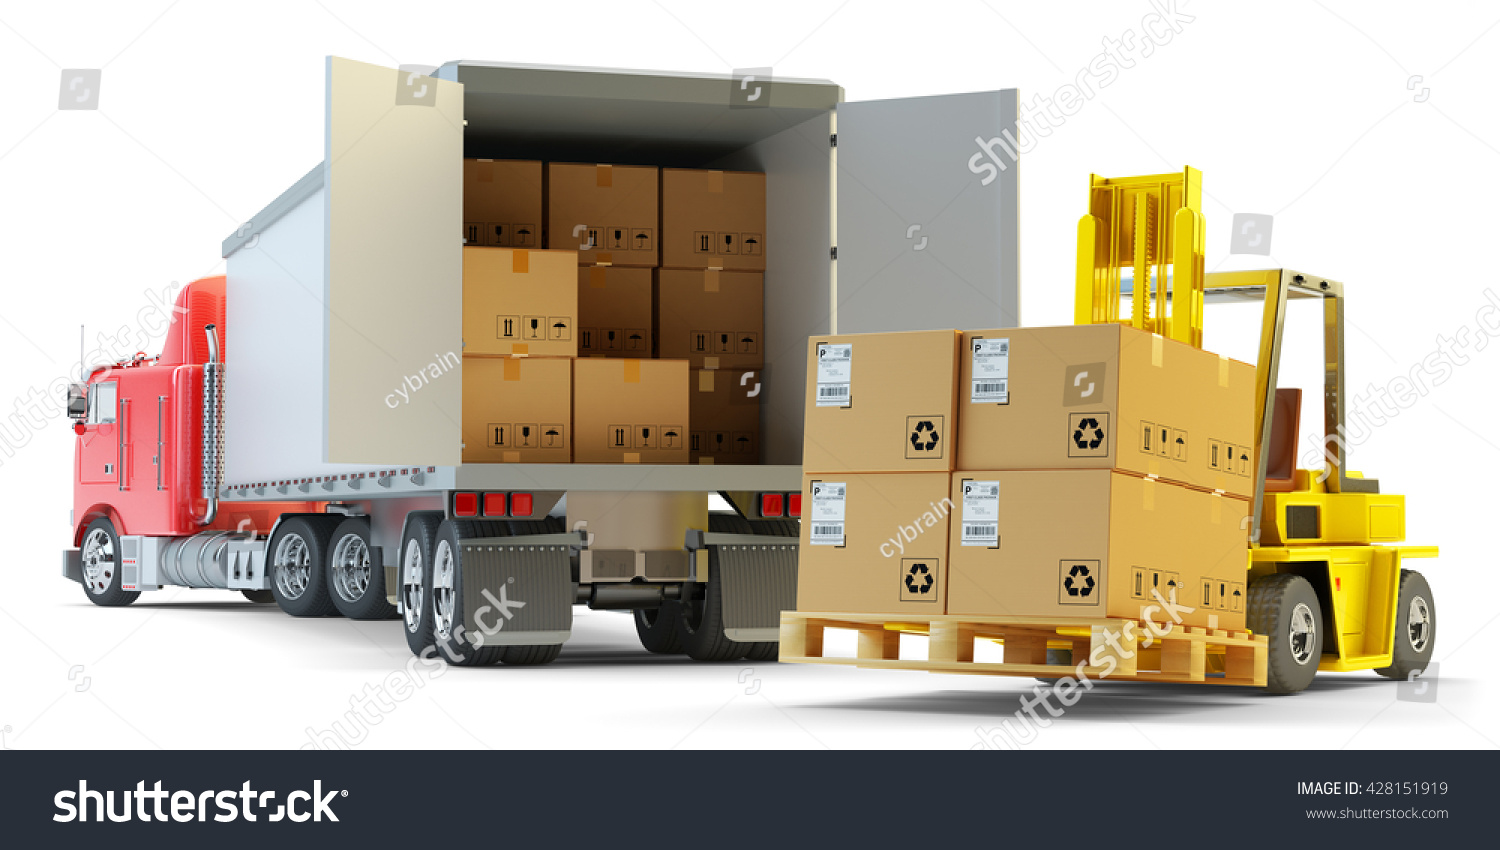 How to organize a dispatch office for cargo transportation